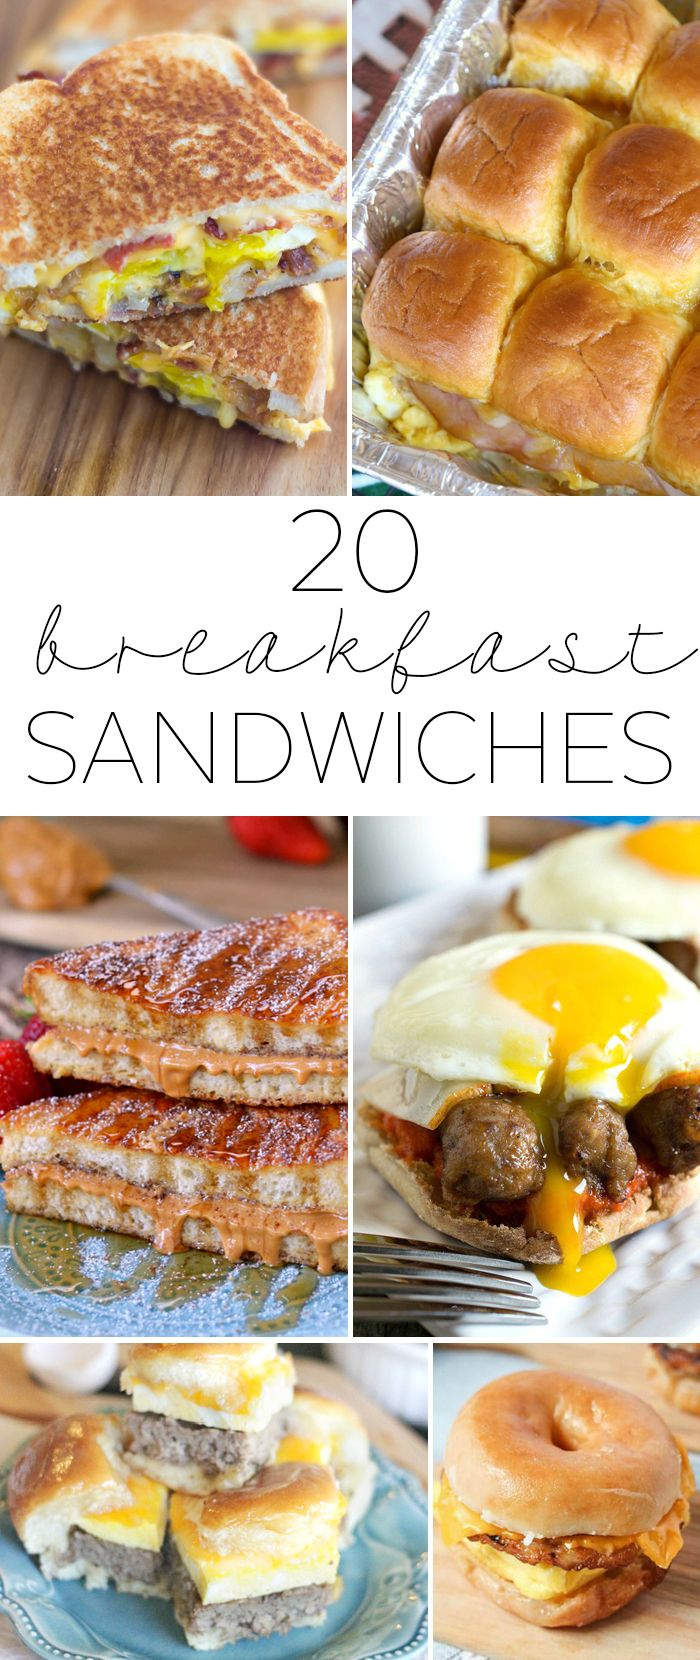 20 Breakfast Sandwiches - awesome way to get protein in every morning and make sure you start your day off right!